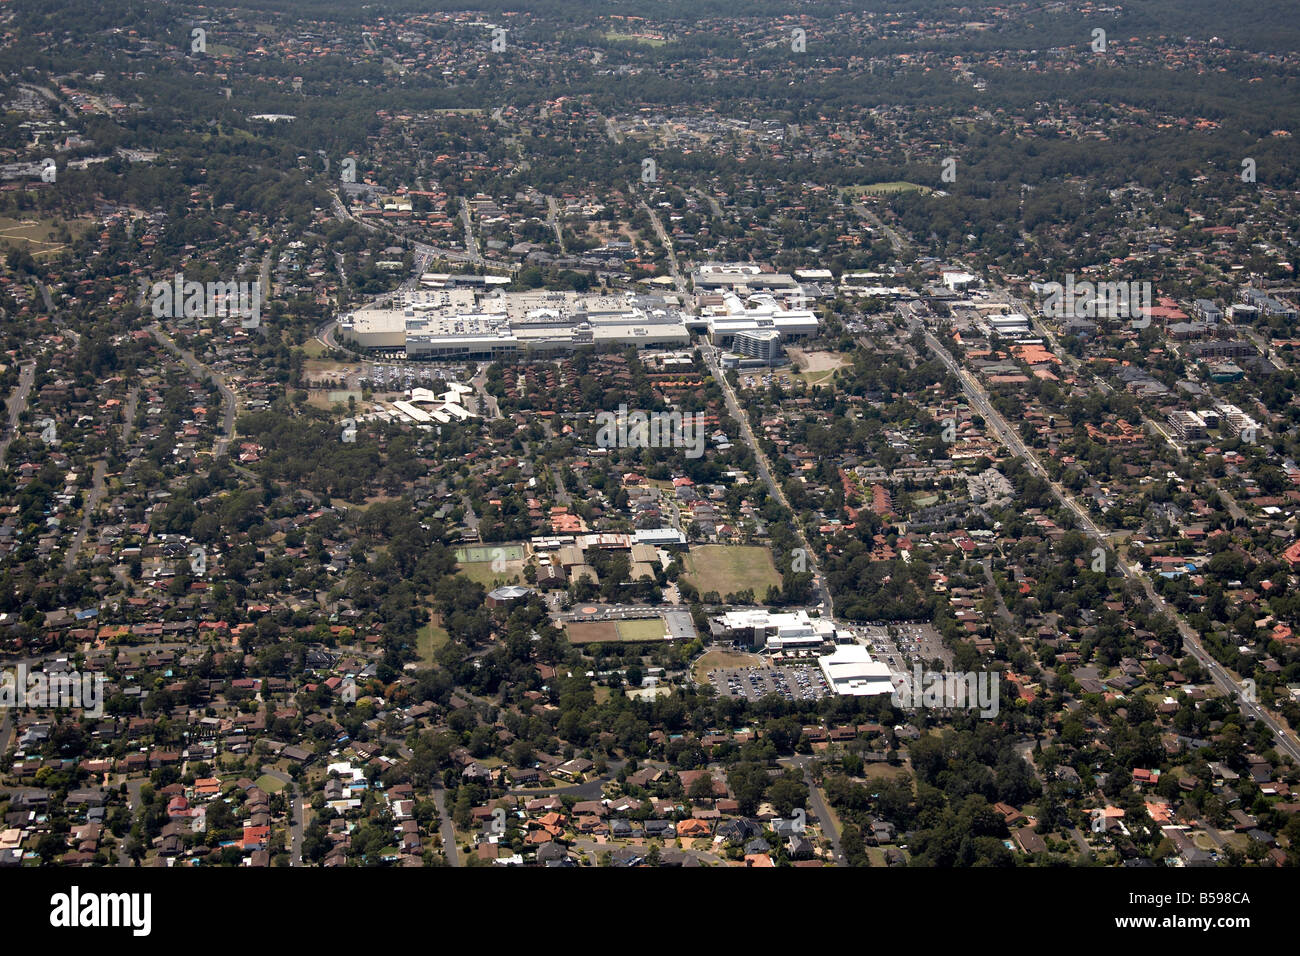 Aerial view south east of Castle Towers Shopping Centre RSL Showground Road suburban houses Seven Hills Sydney NSW - Stock Image